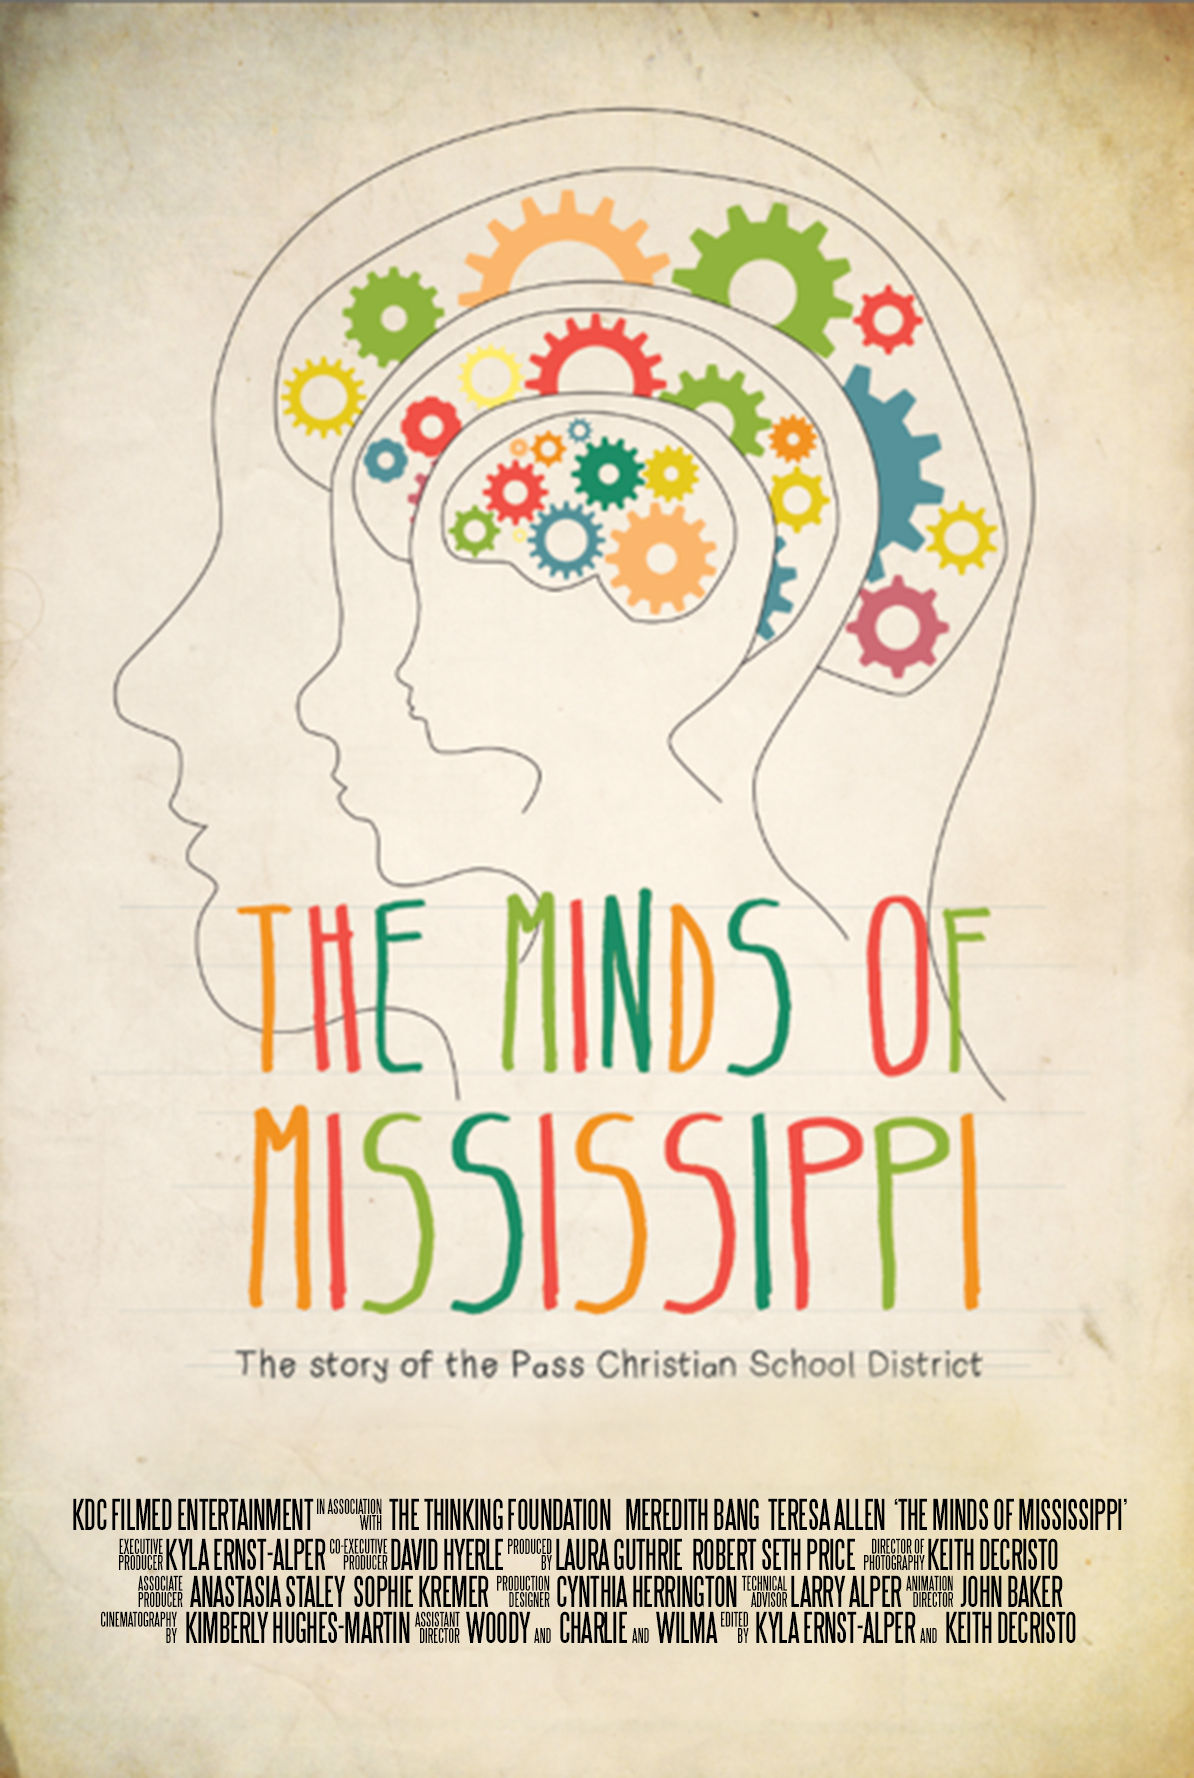 The Minds of Mississippi: The Story of the Pass Christian School District